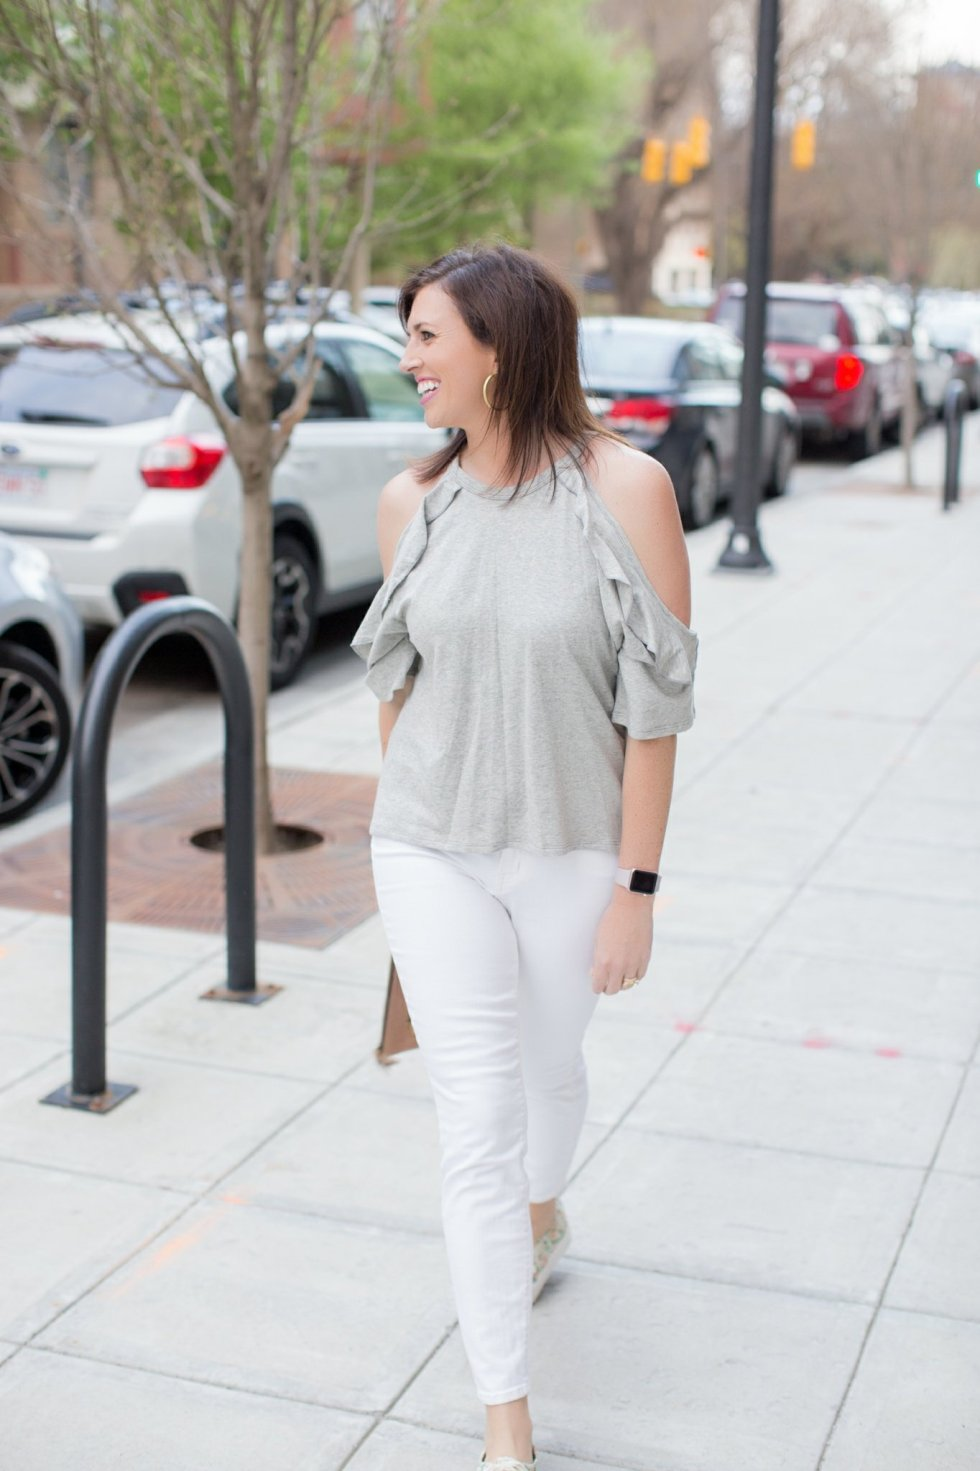 Cold Shoulder + Ruffles - I'm Fixin' To - @mbg0112